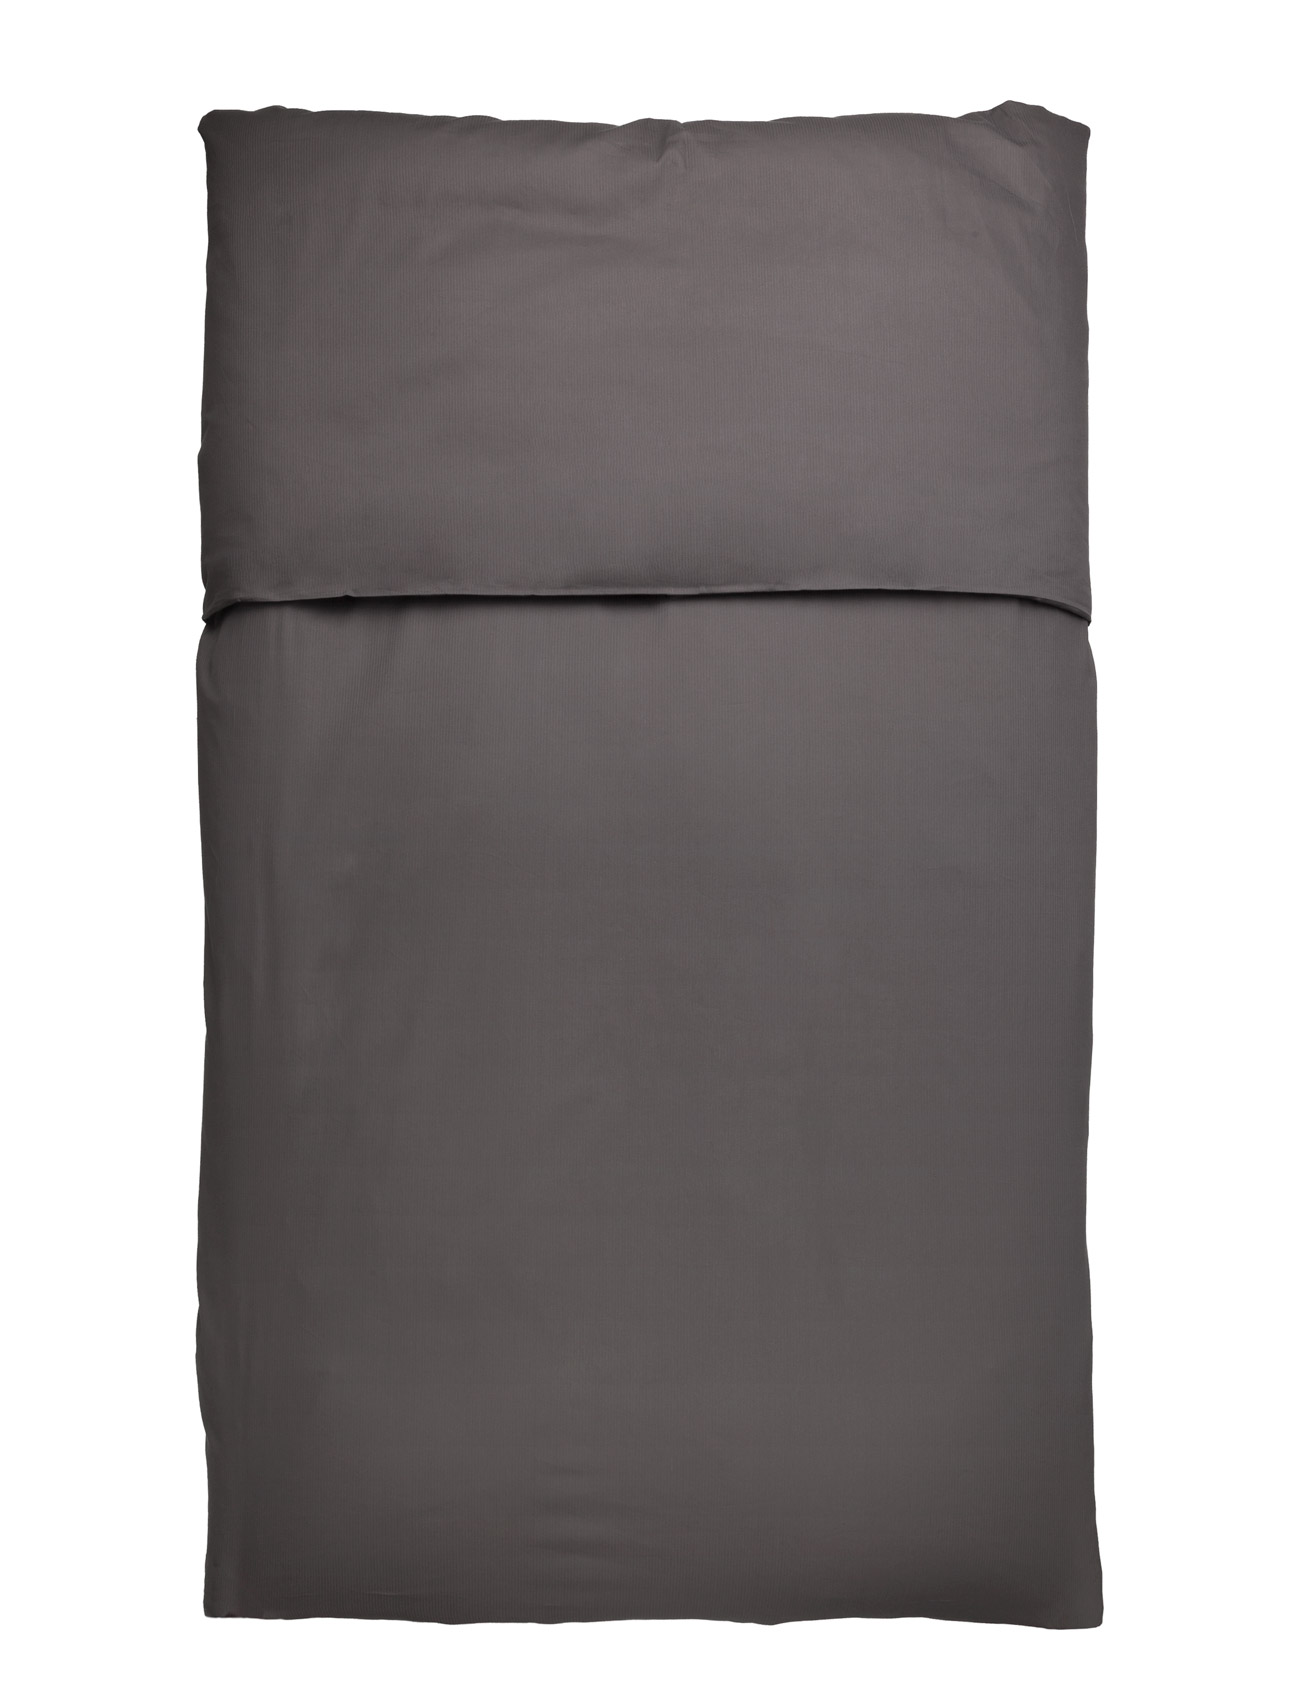 Urban Gray Duvet Lexington Company Home Hjem til Herrer i